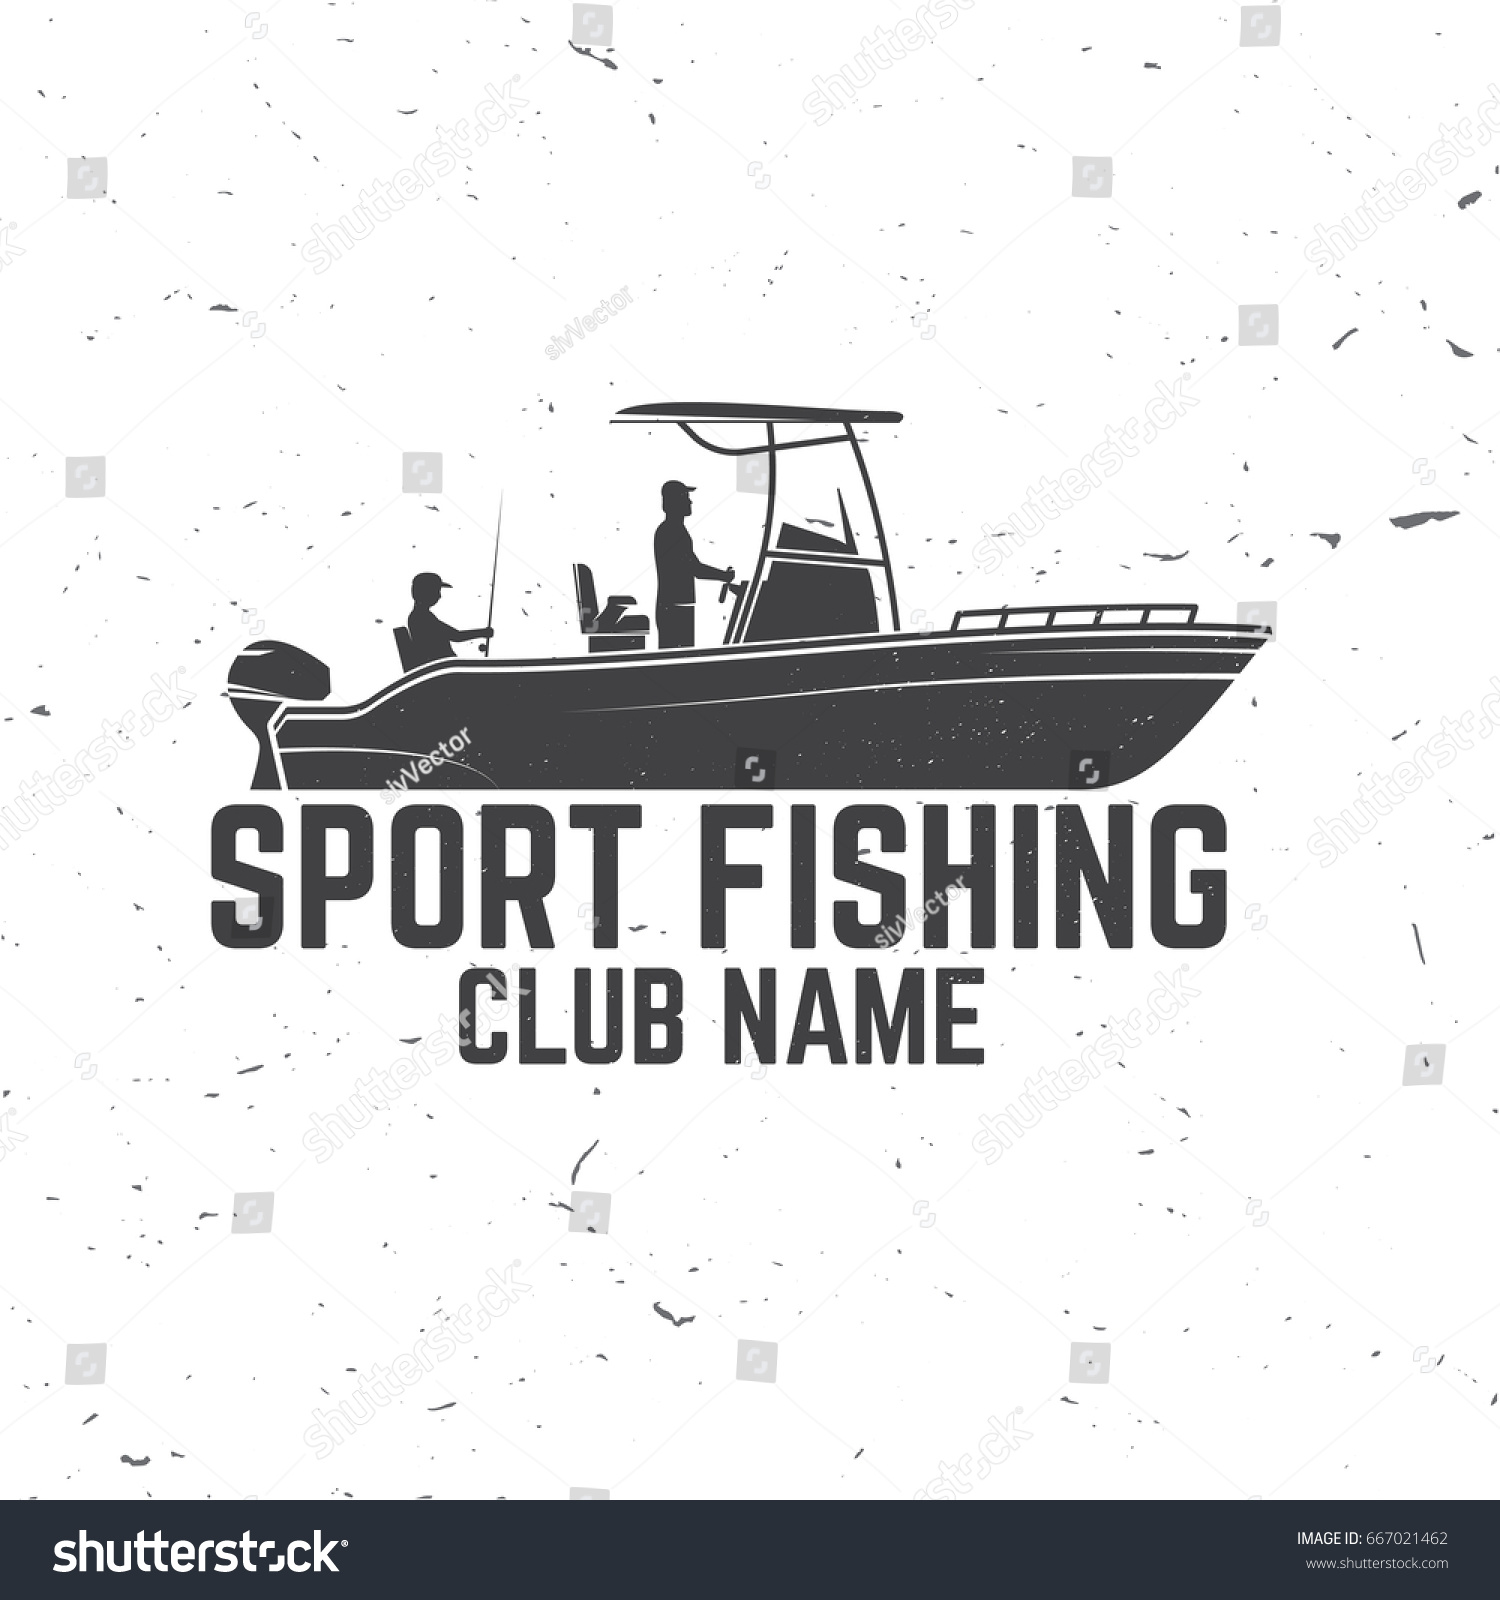 Sport Fishing Club Vector Illustration Concept Stock Vector (Royalty